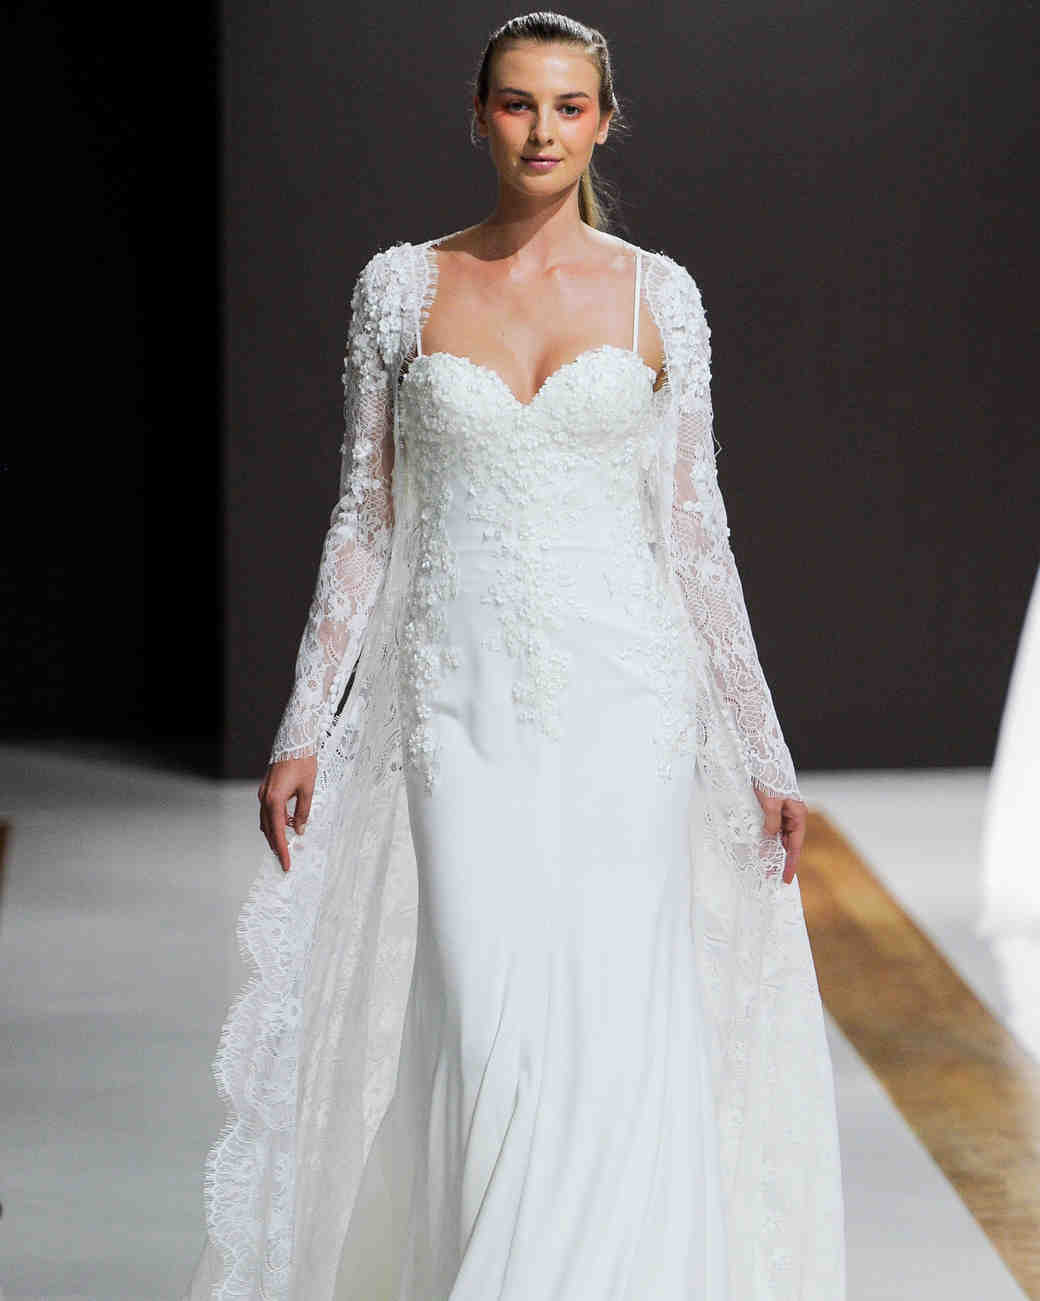 mark zunino wedding dress fall 2018 spaghetti strap embellished sleeves